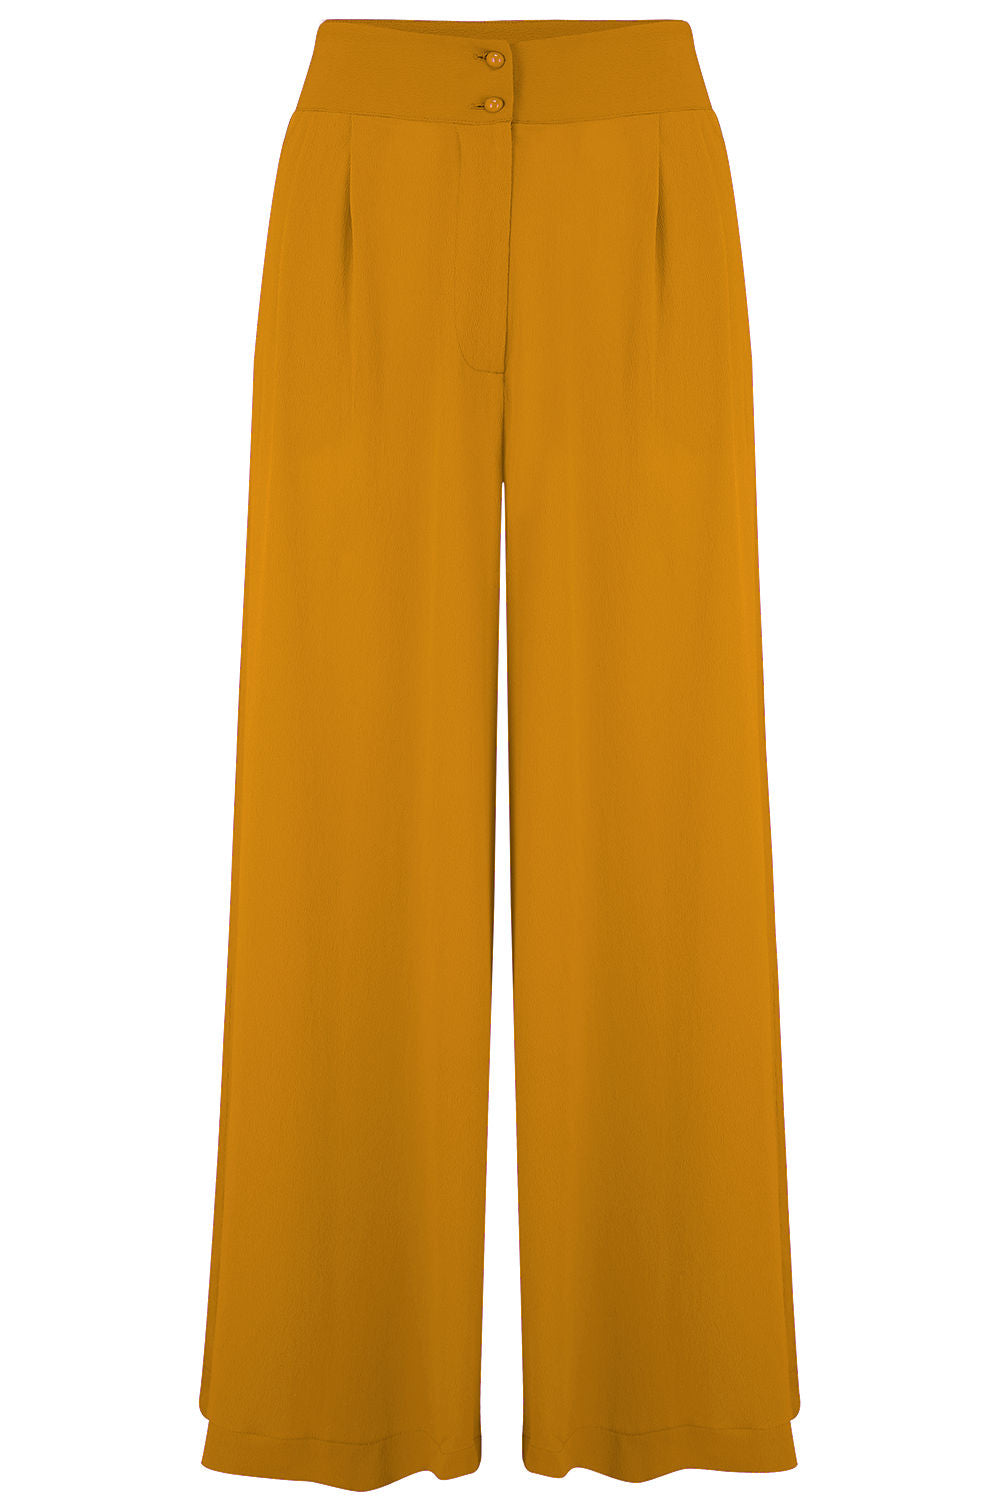 1940s Dresses and Clothing UK | 40s Shoes UK Pre-Order The Sophia Plazo Wide Leg Trousers in Mustard Easy To Wear Vintage Inspired Style £39.00 AT vintagedancer.com